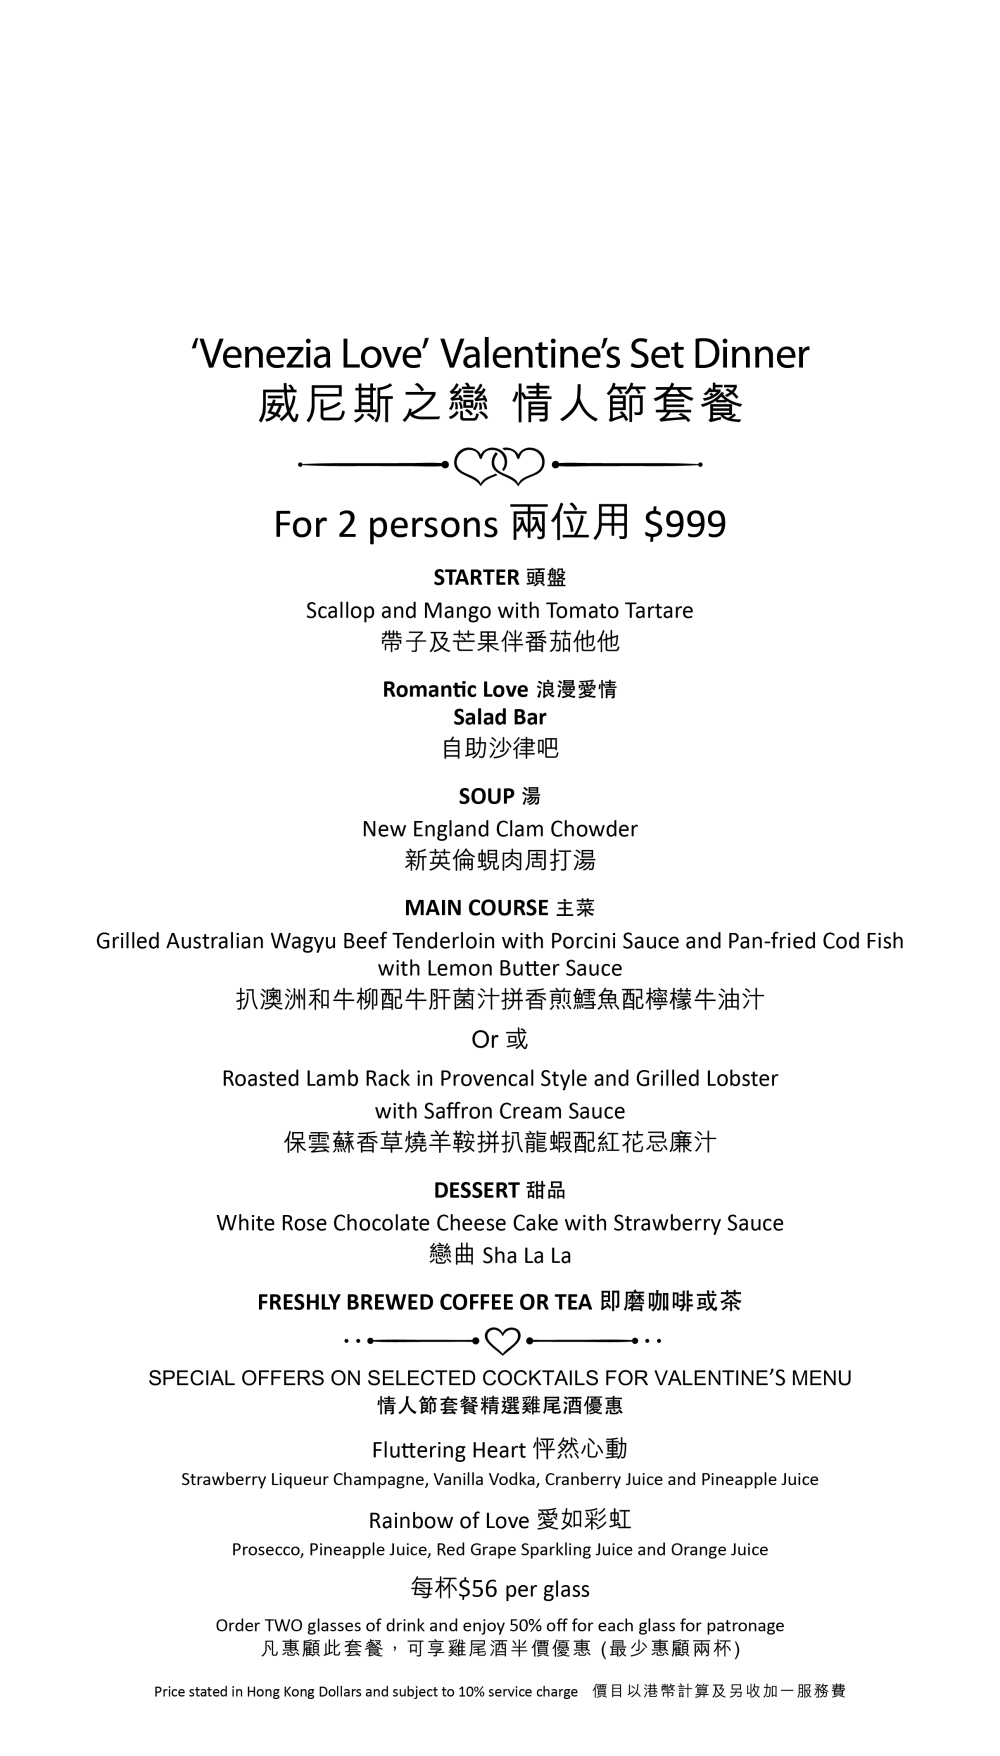 Avanti Love about Italy 情約意大利 2018 Valentine's Menu - OKiBook Hong Kong Restaurant booking